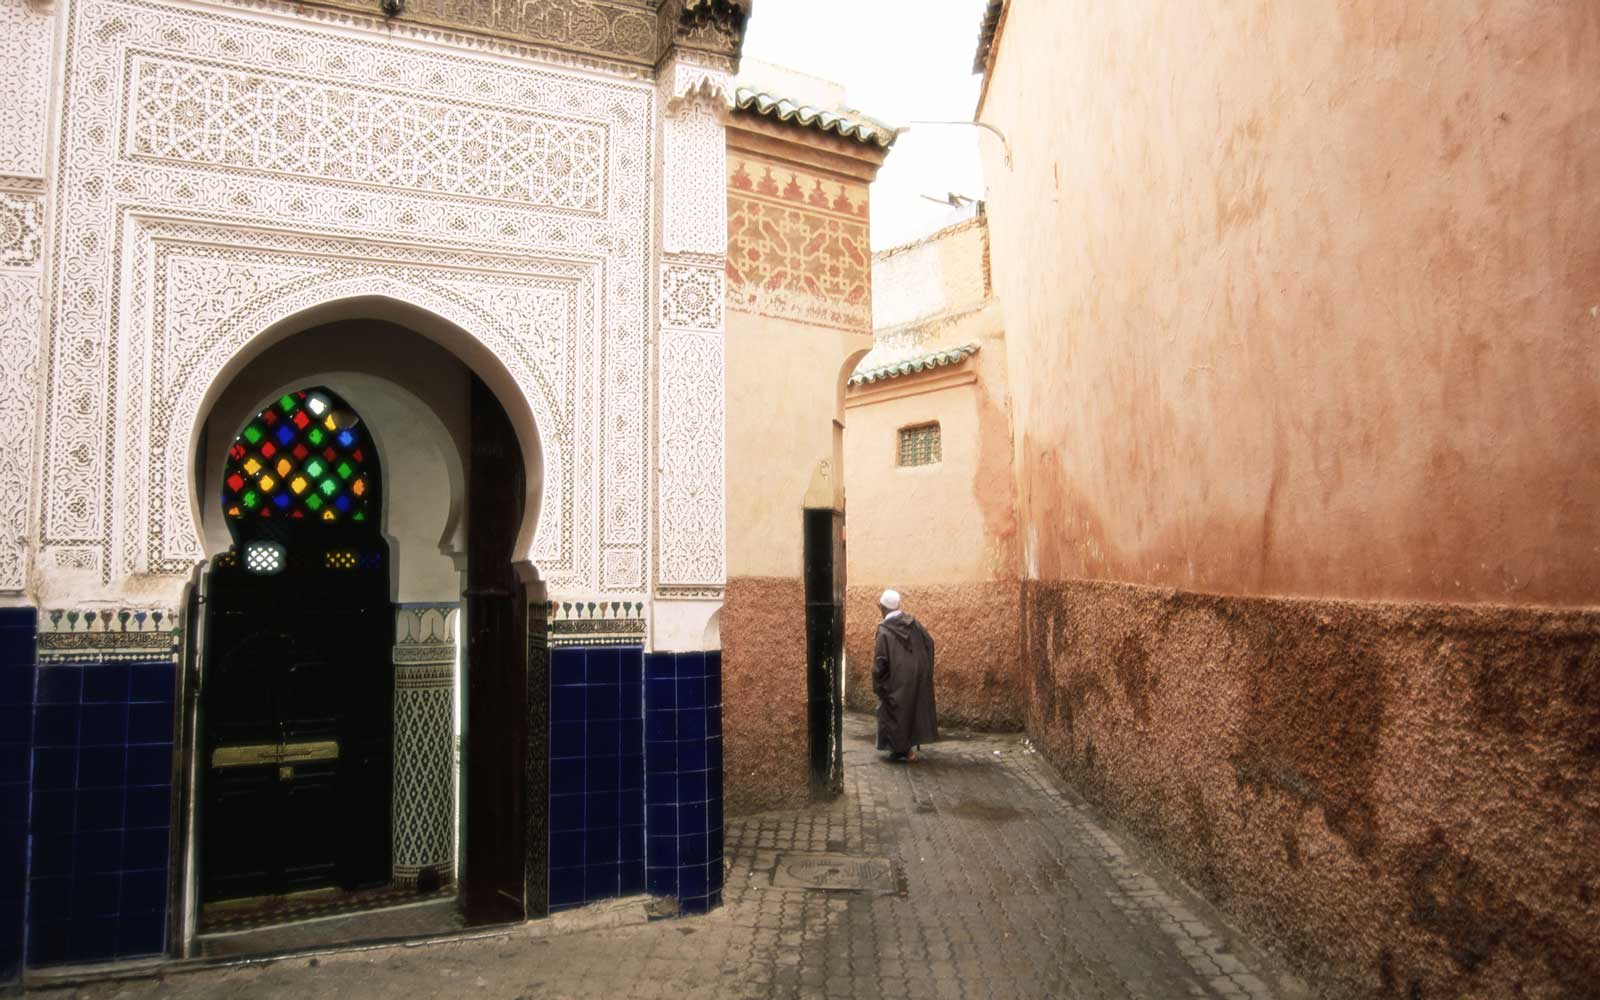 How to Decorate Your Home Like Marrakesh